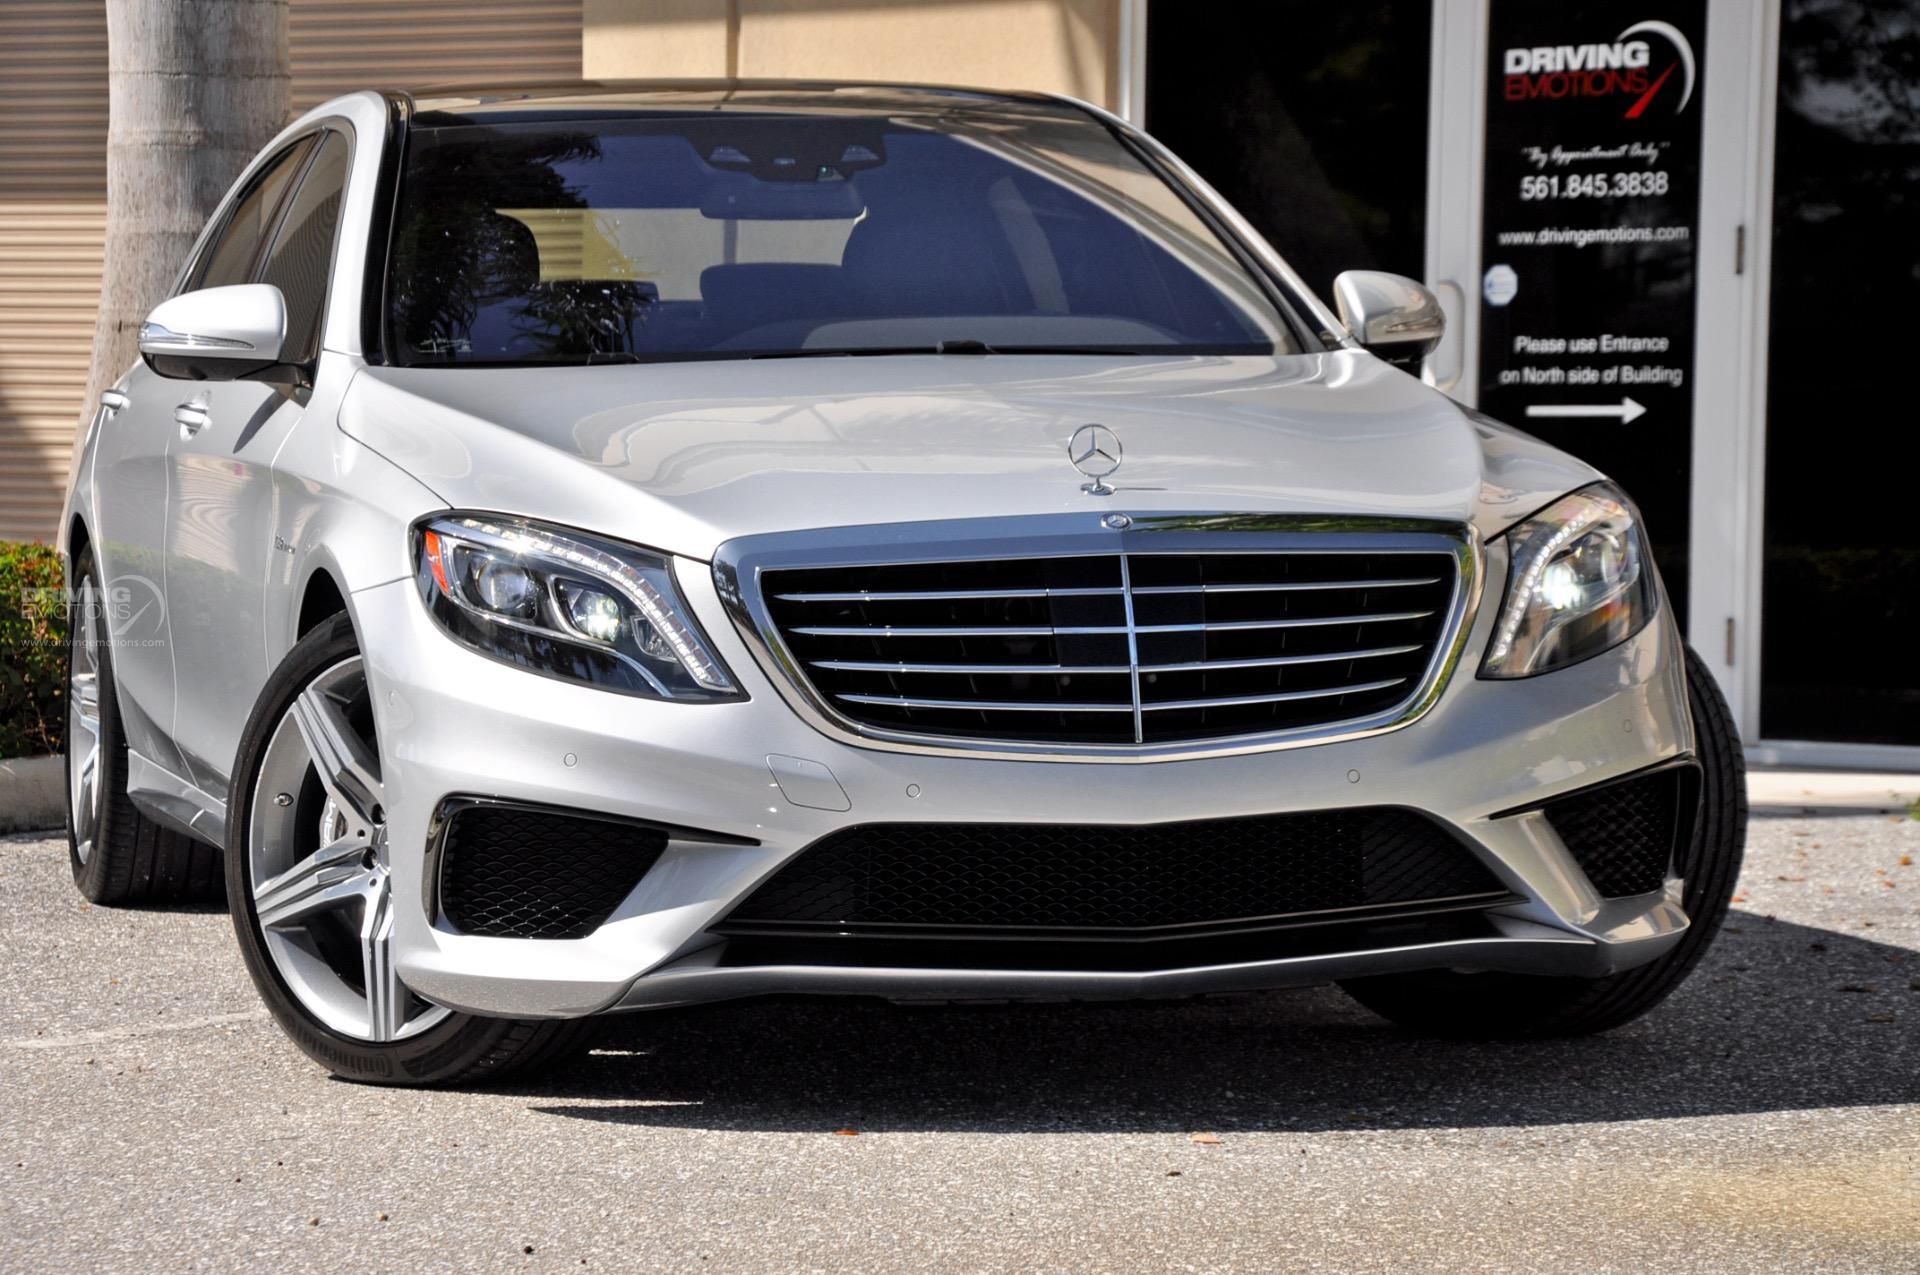 2014 mercedes benz s63 amg s63 amg stock 5858 for sale for Mercedes benz s63 amg 2014